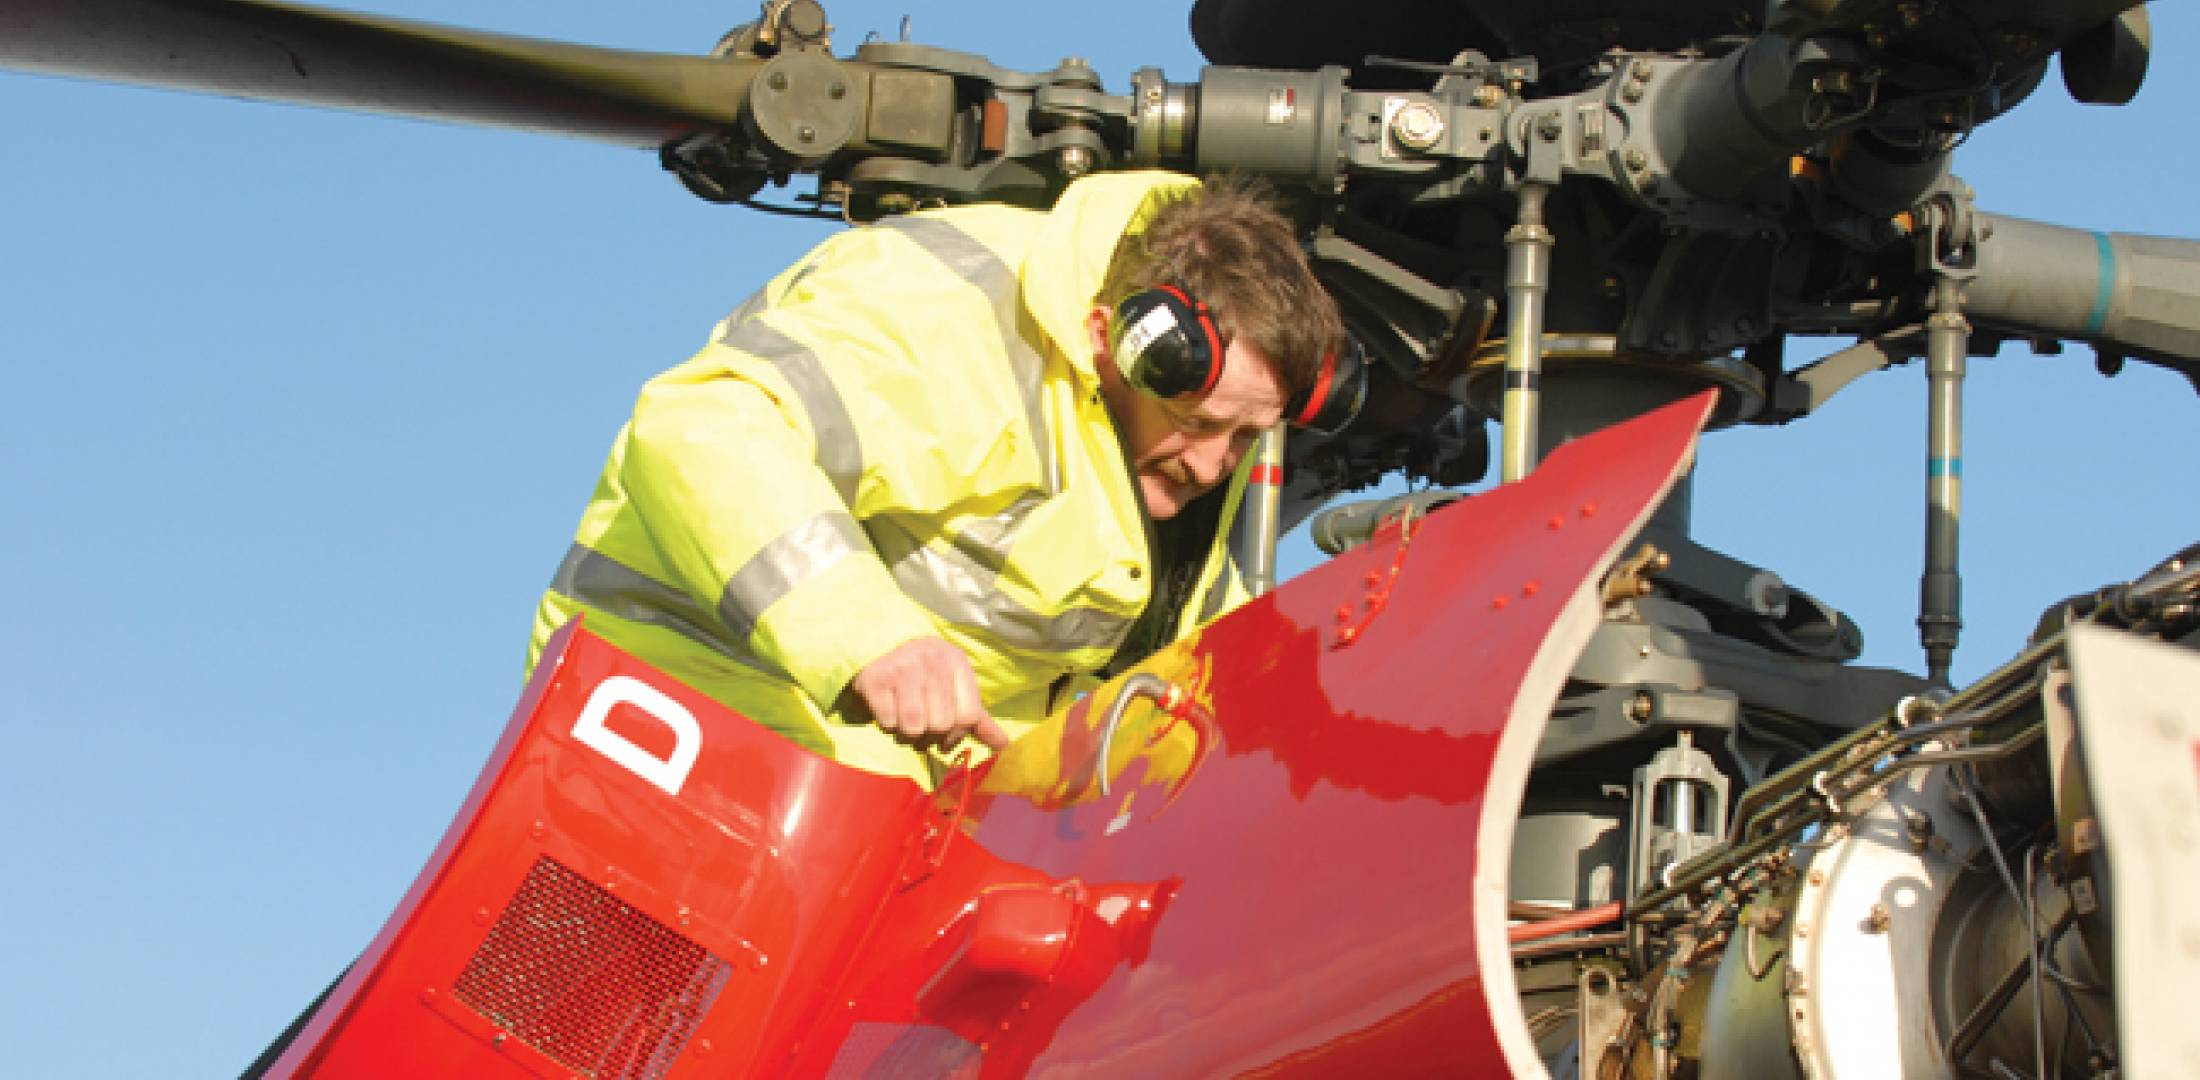 Helicopter maintenance techs face a positive job market this year, according to JSfirm's recent employment survey.